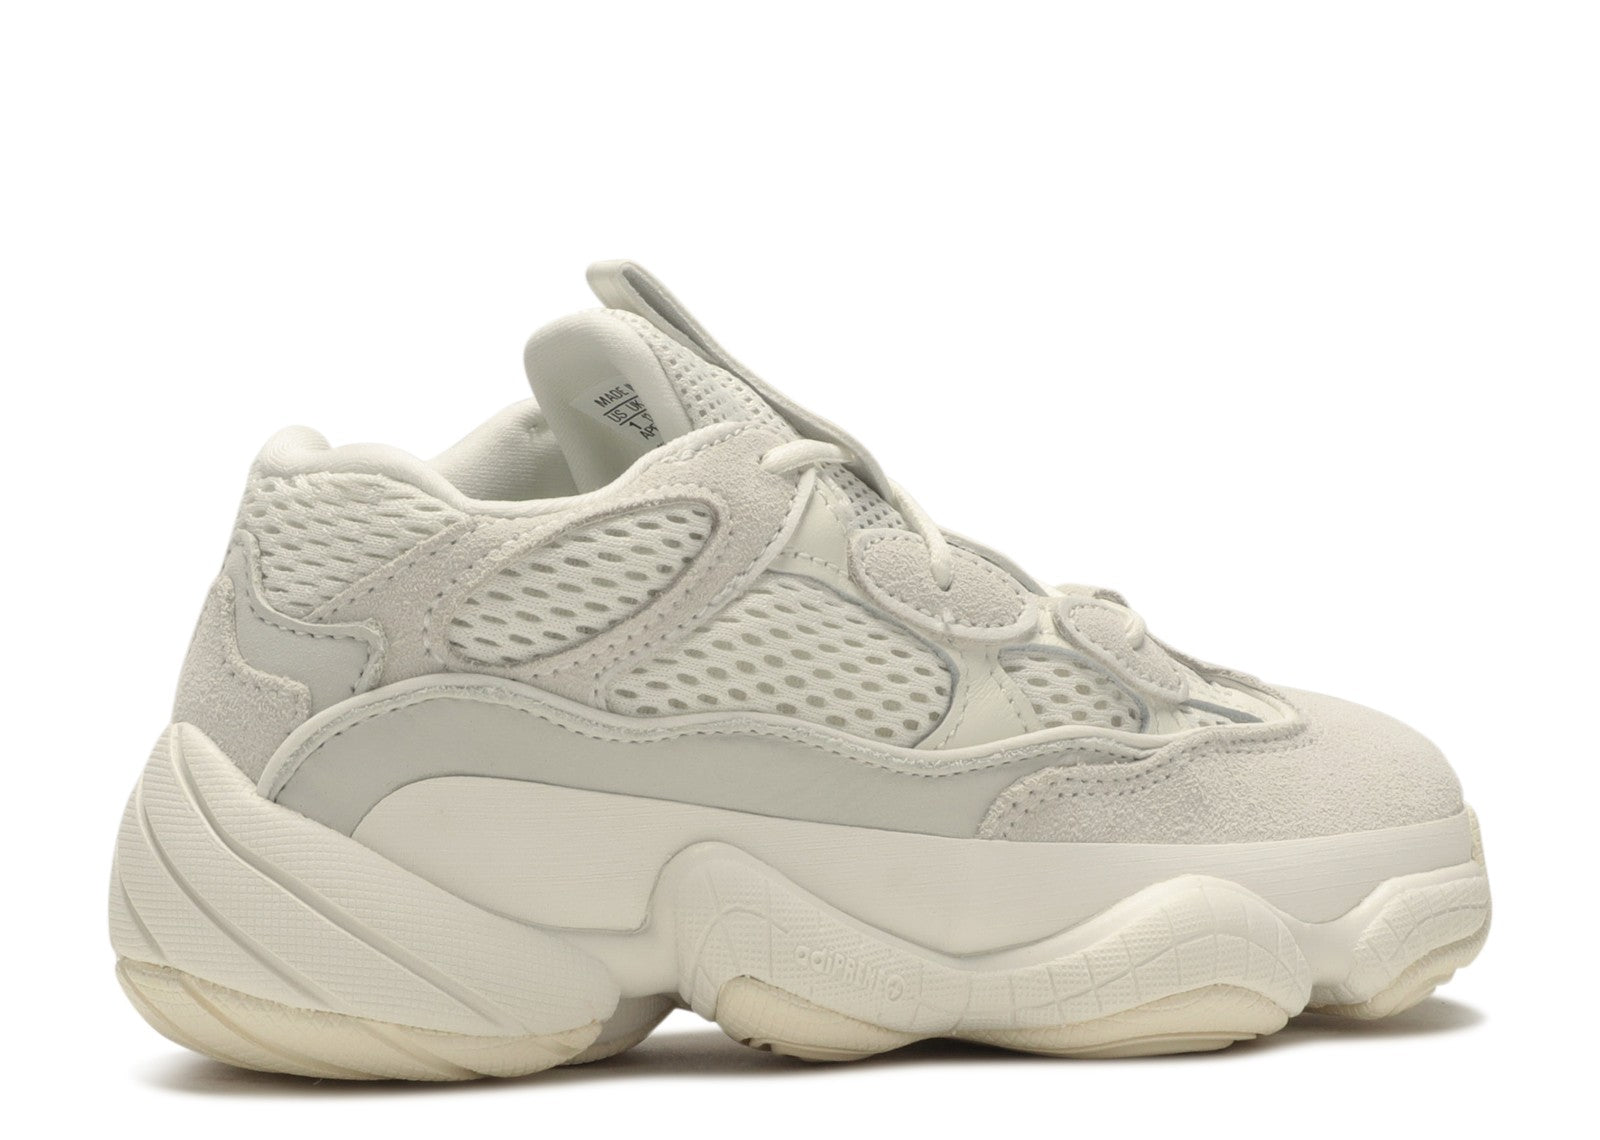 Adidas Yeezy Boost 500 Kids 'Bone White'